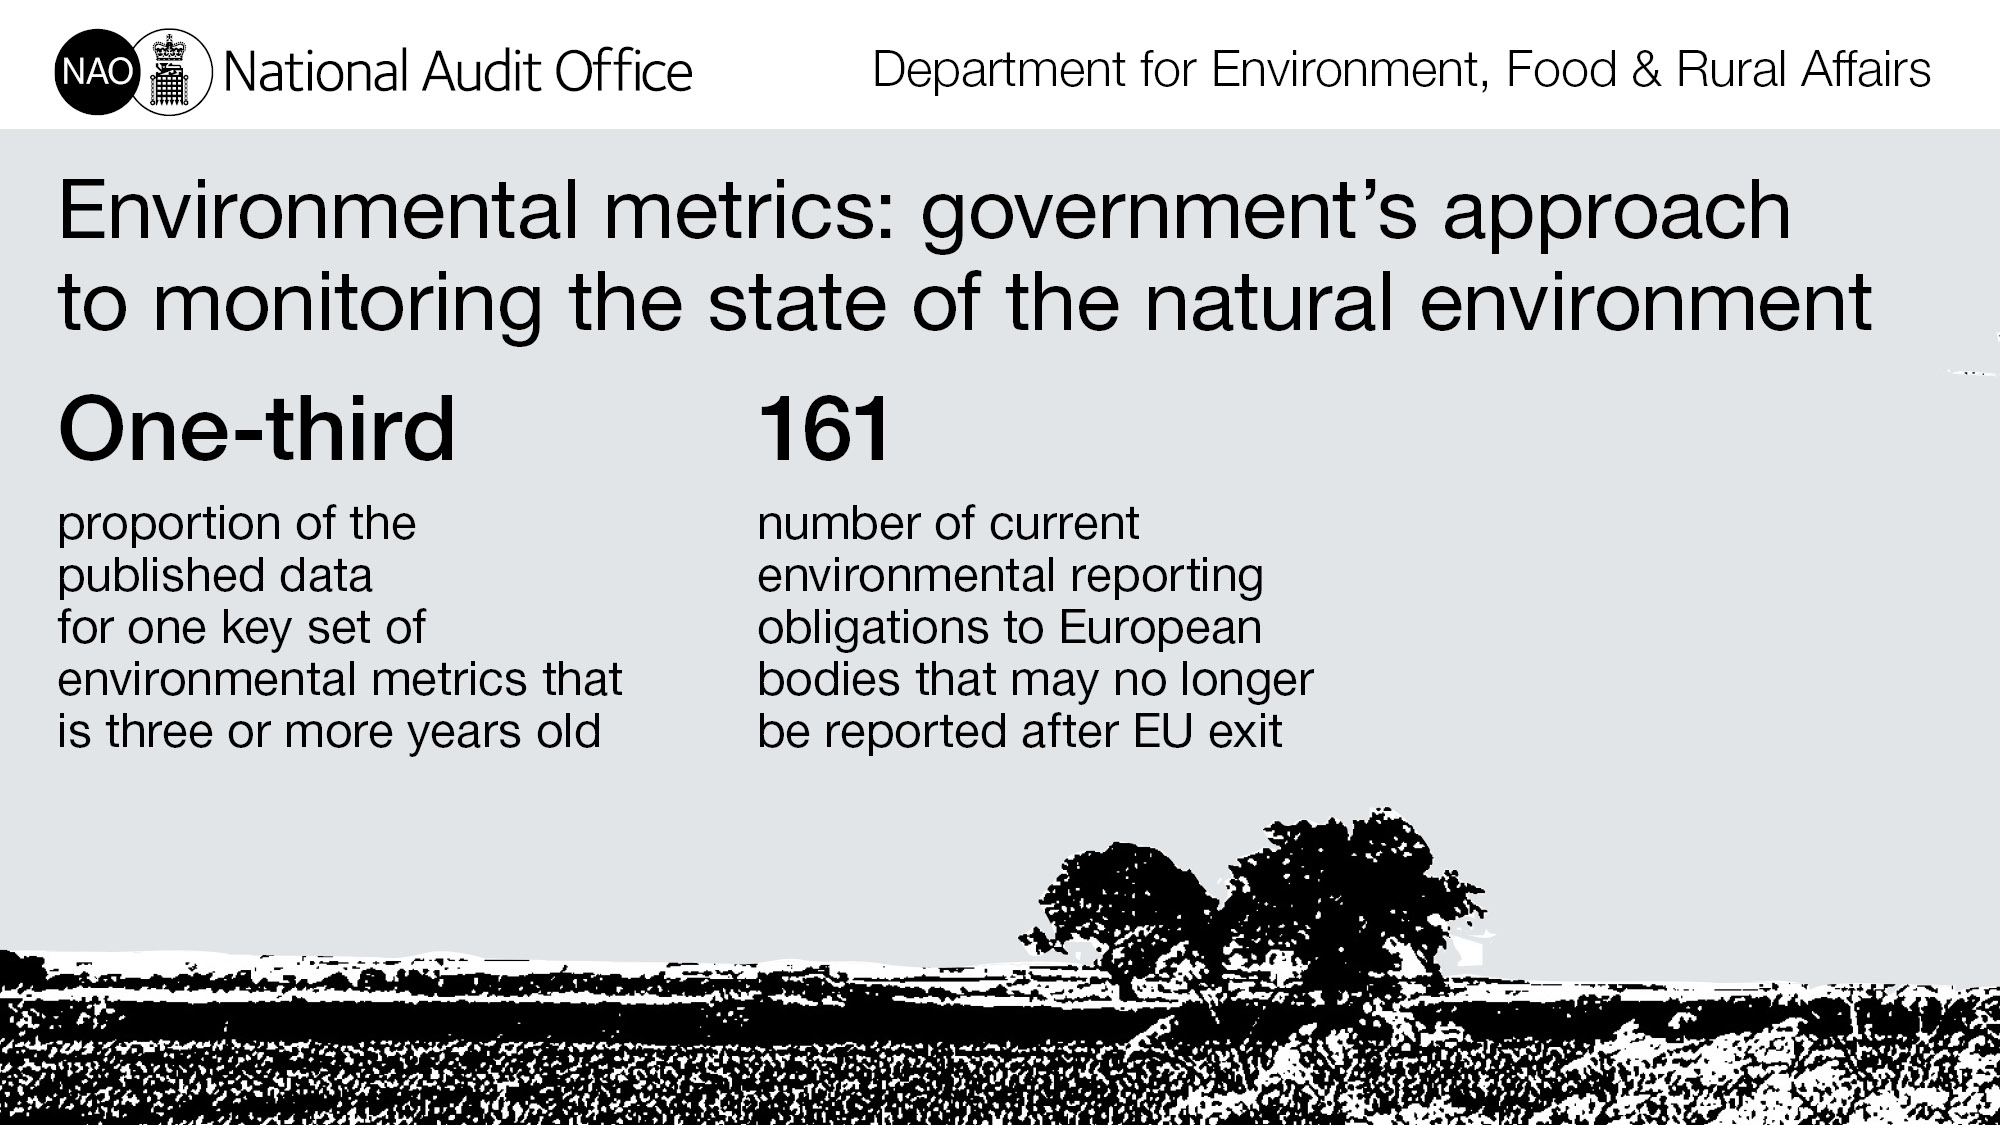 Environmental metrics: government's approach to monitoring